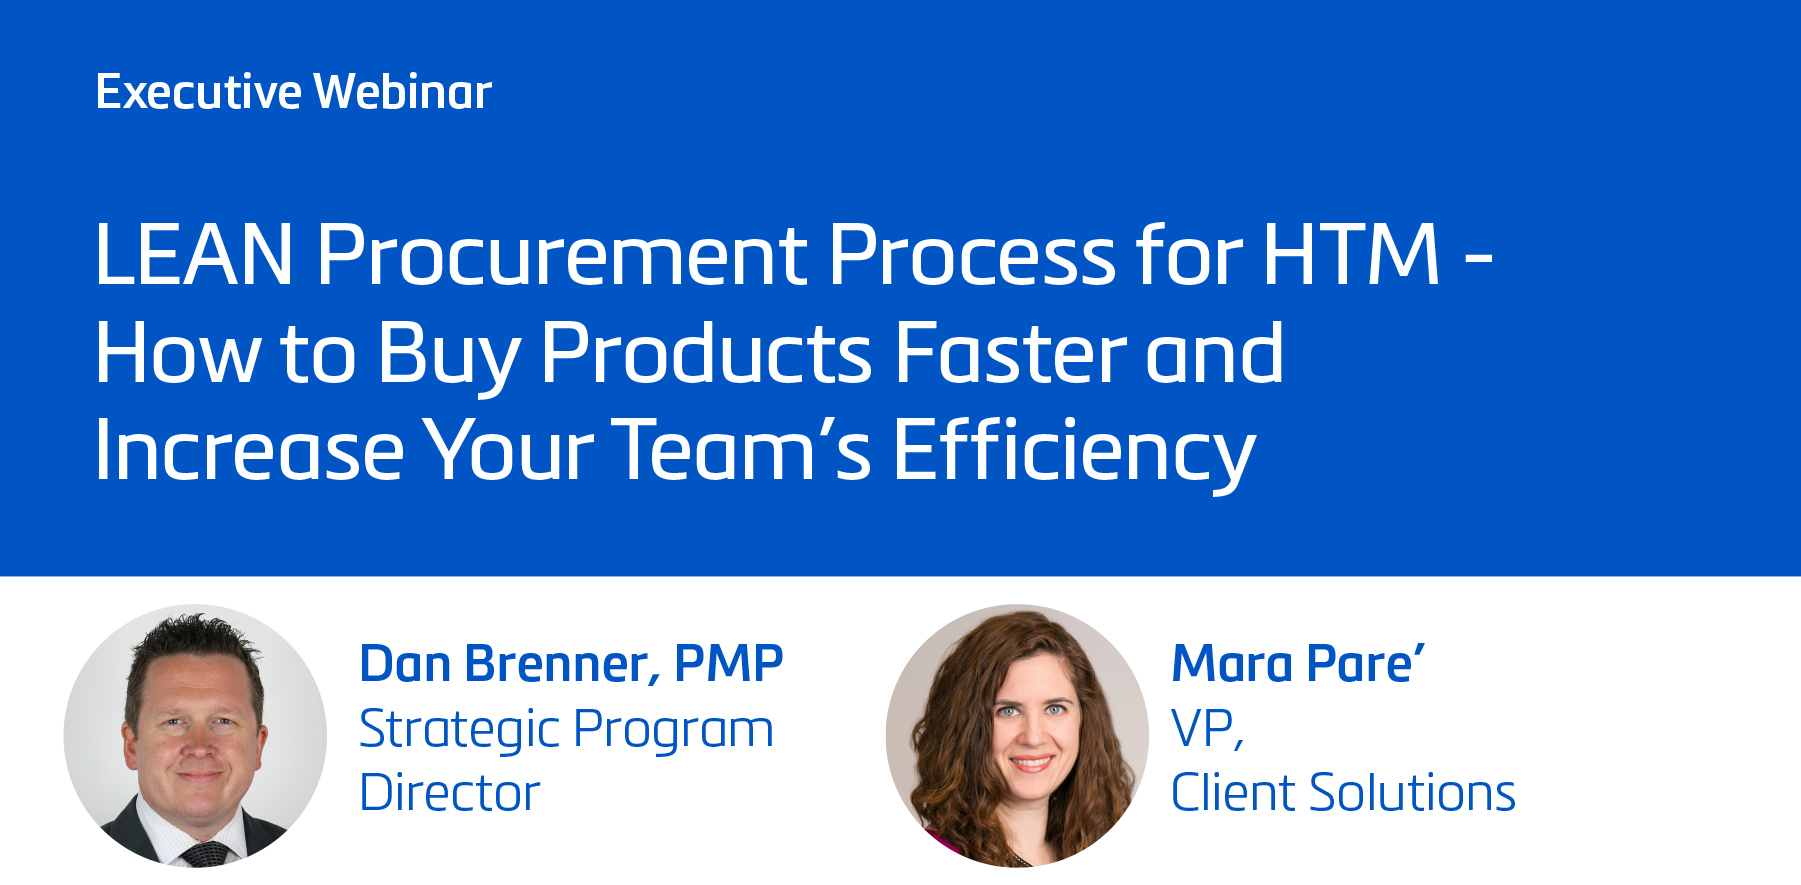 LEAN Procurement Process for HTM - How to Buy Products Faster and Increase Your Team's Efficiency